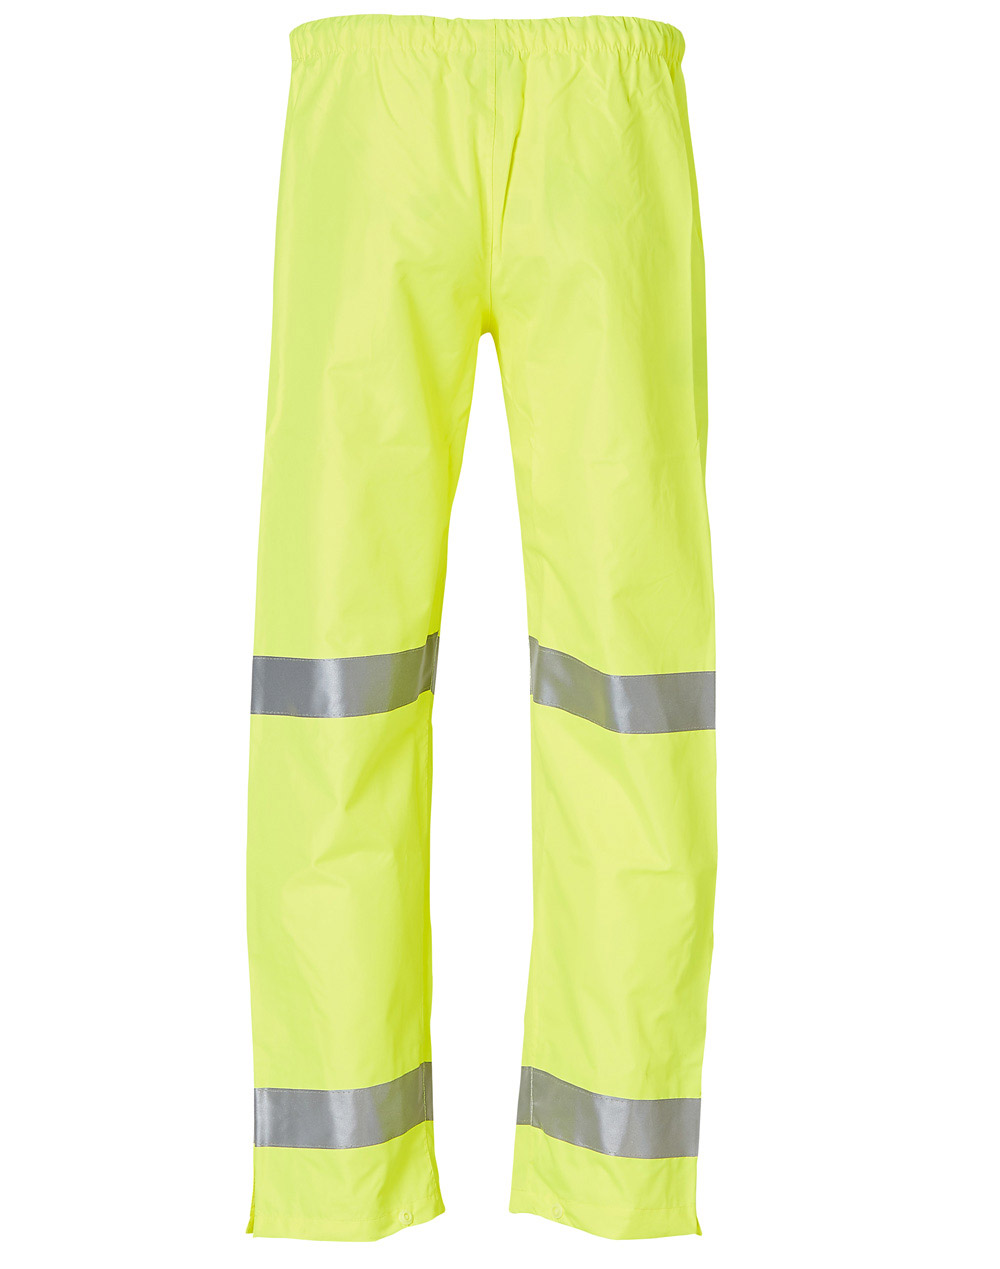 https://s3-ap-southeast-1.amazonaws.com/ws-imgs/WORKWEAR/HP01A_Yellow_Back.jpg